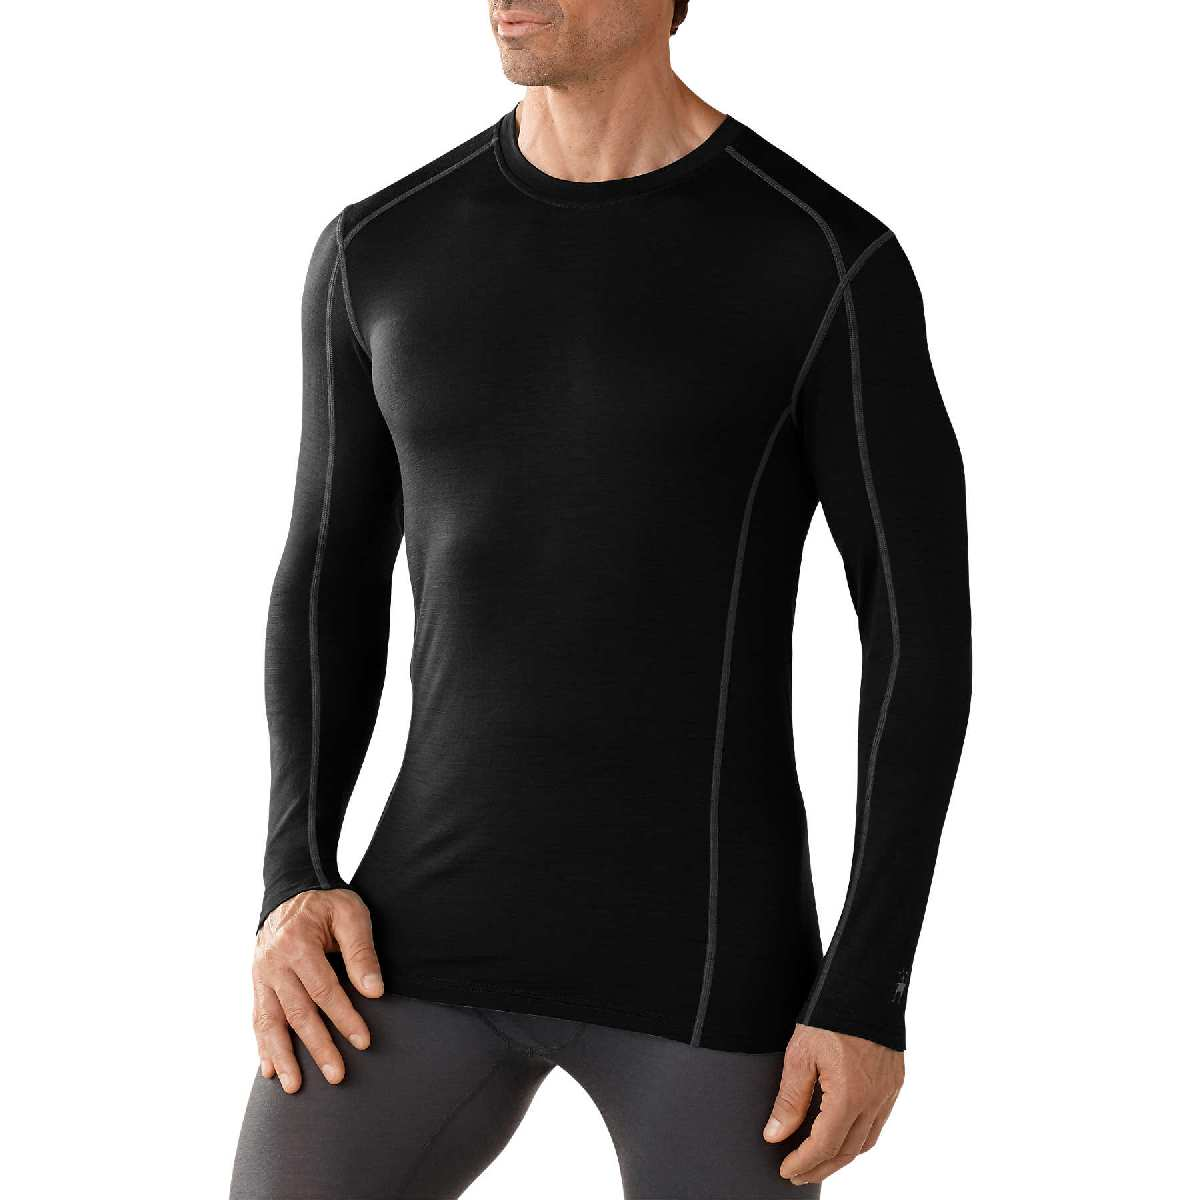 SmartWool NTS Micro 150 Crew Long Sleeve Base Layer Men's Size S Black U.S.A. & Canada